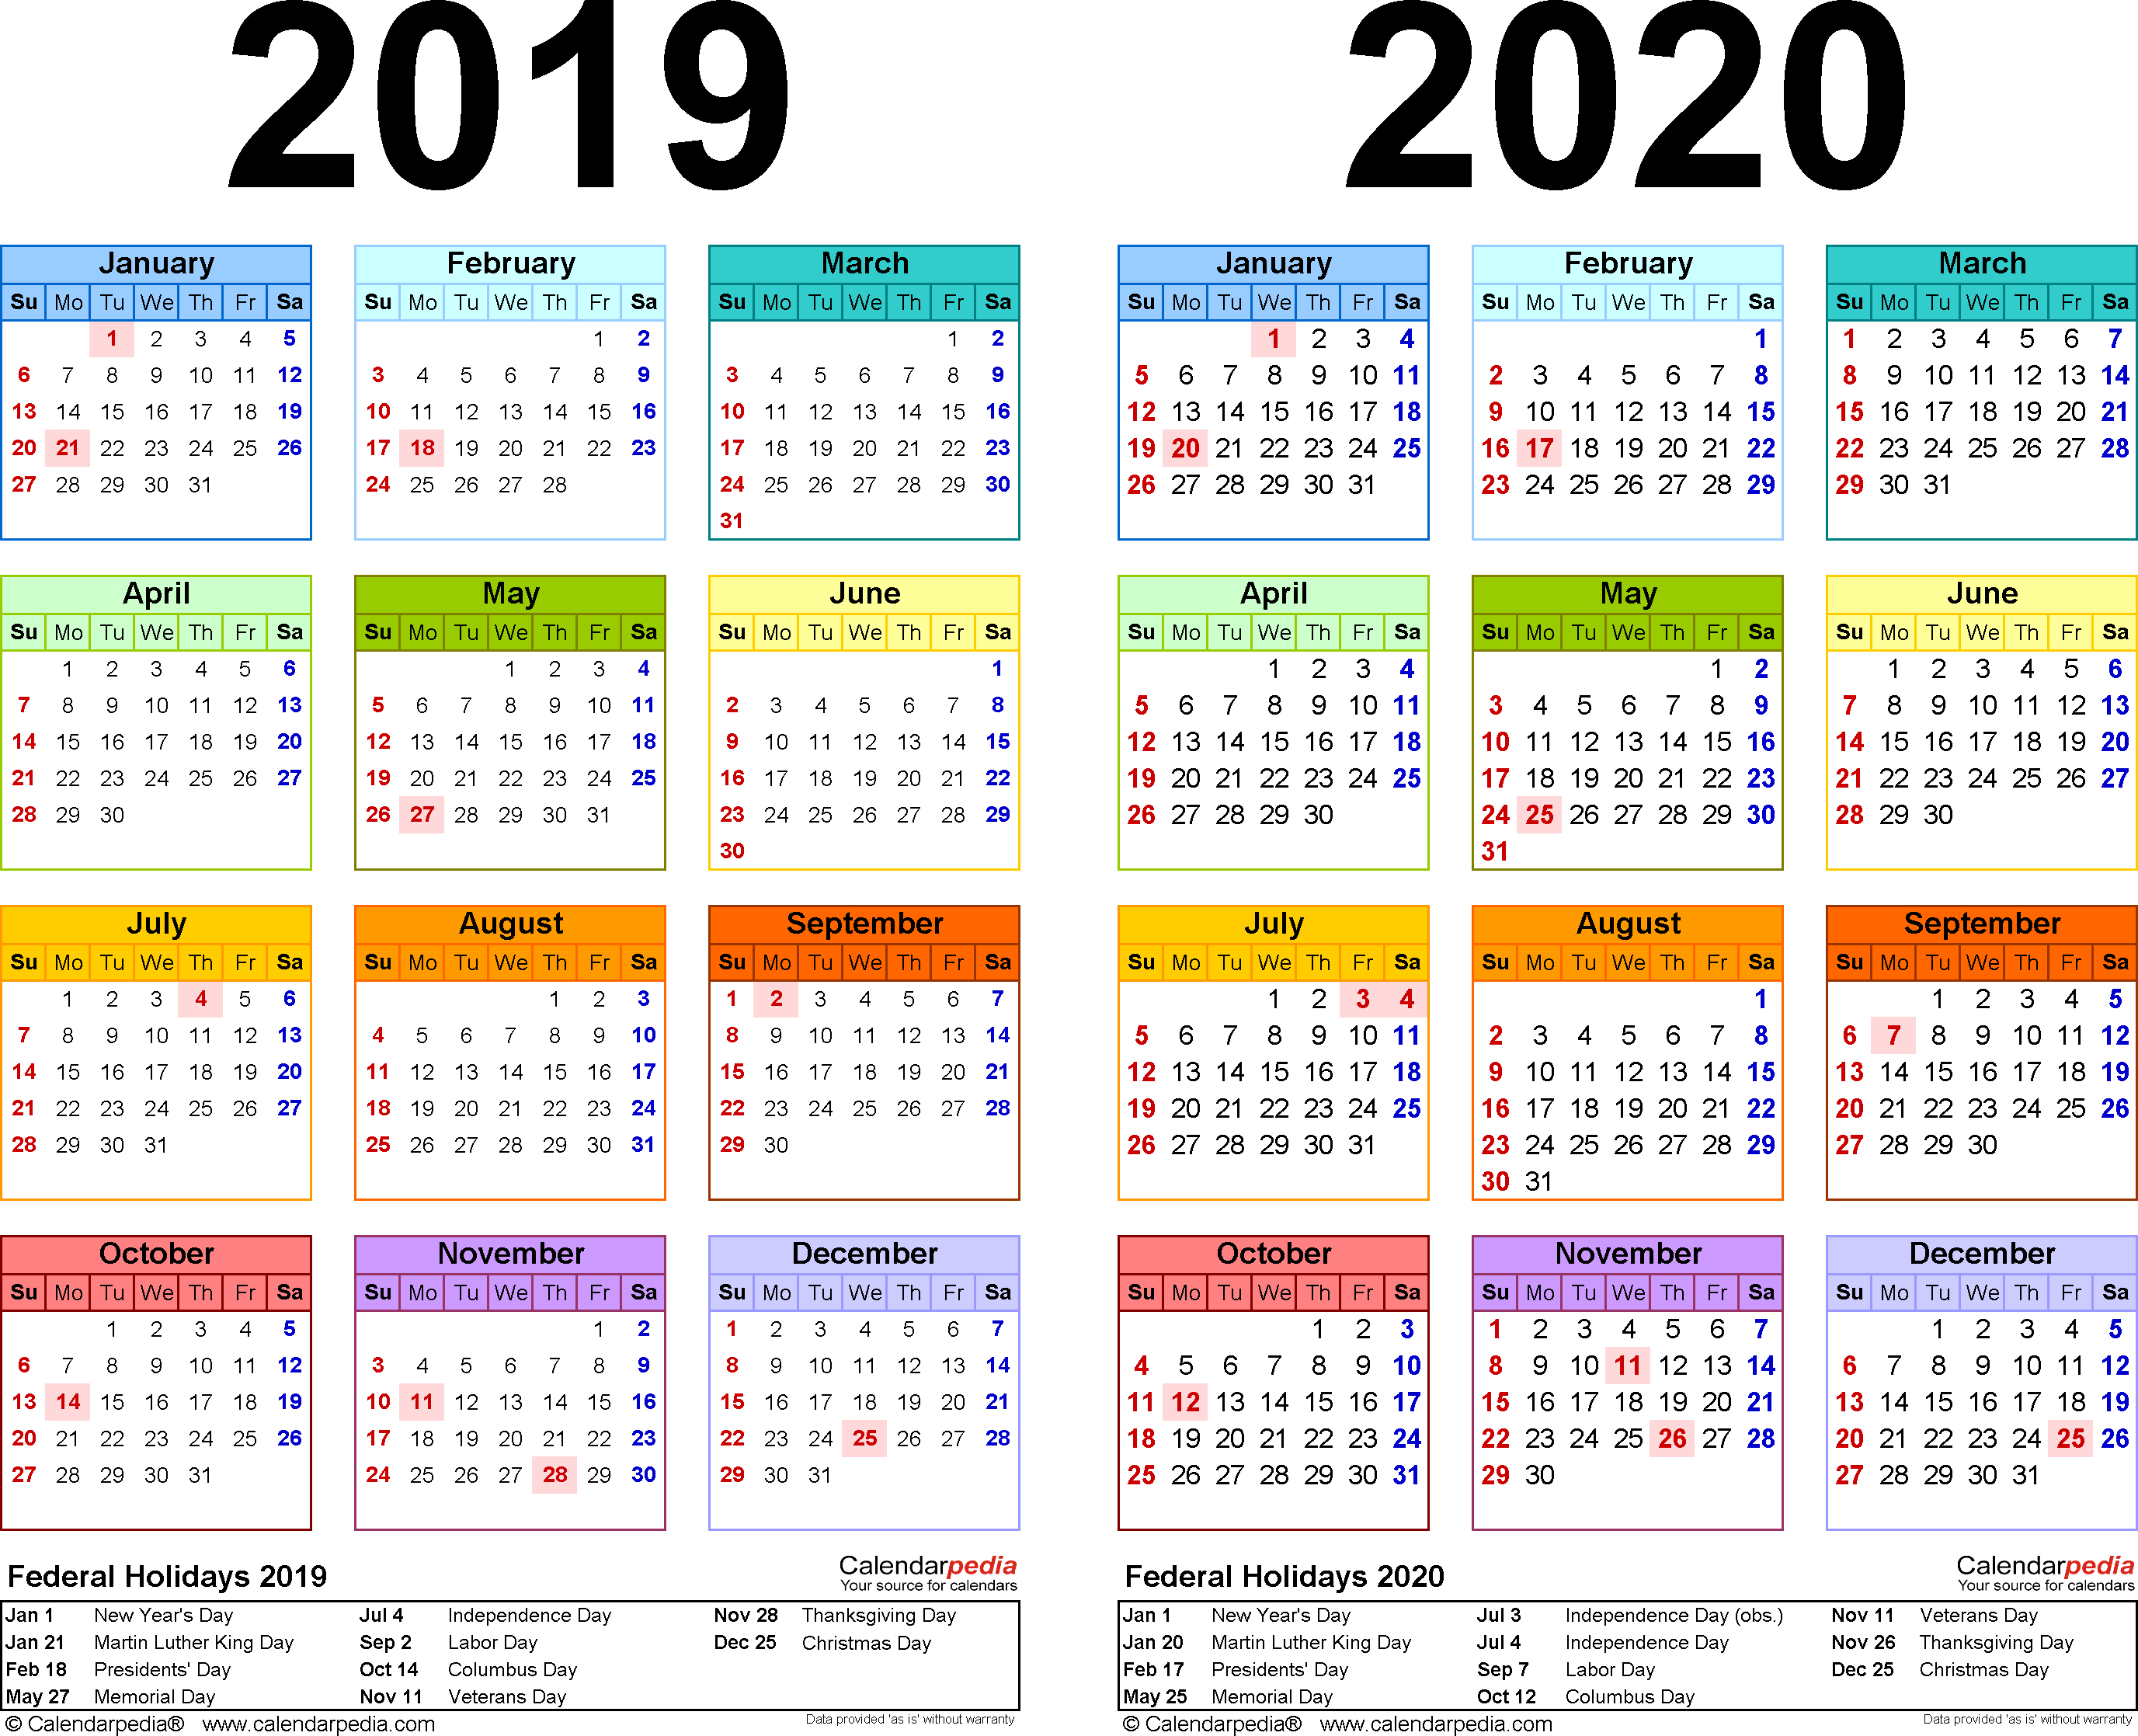 2019-2020 Calendar - Free Printable Two-Year Pdf Calendars inside 2019-2020Tax Calendar Month And Week